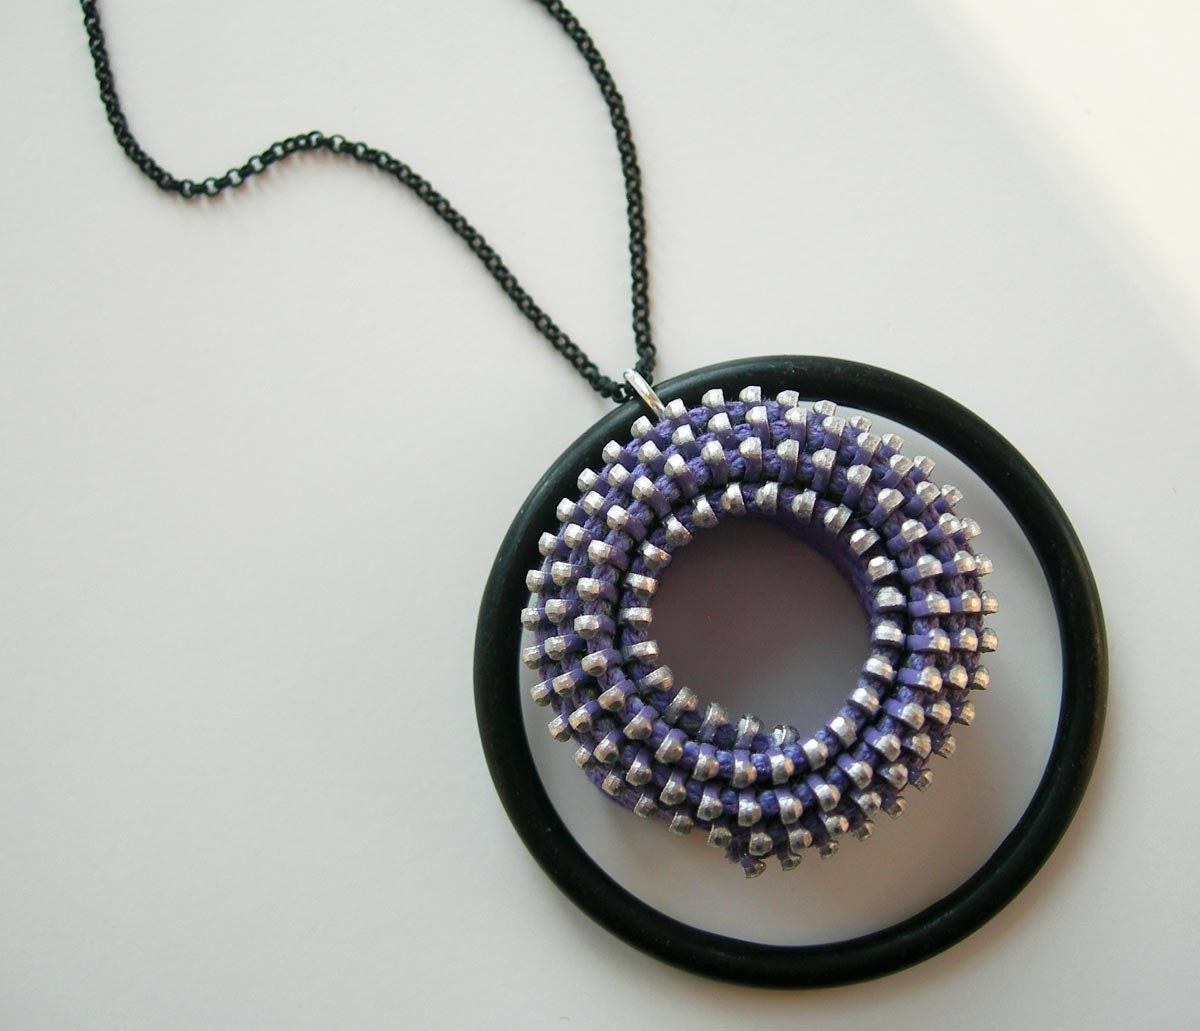 Lavender Vintage Zipper Tape Spiral Necklace with Matte Black Ring and Chain